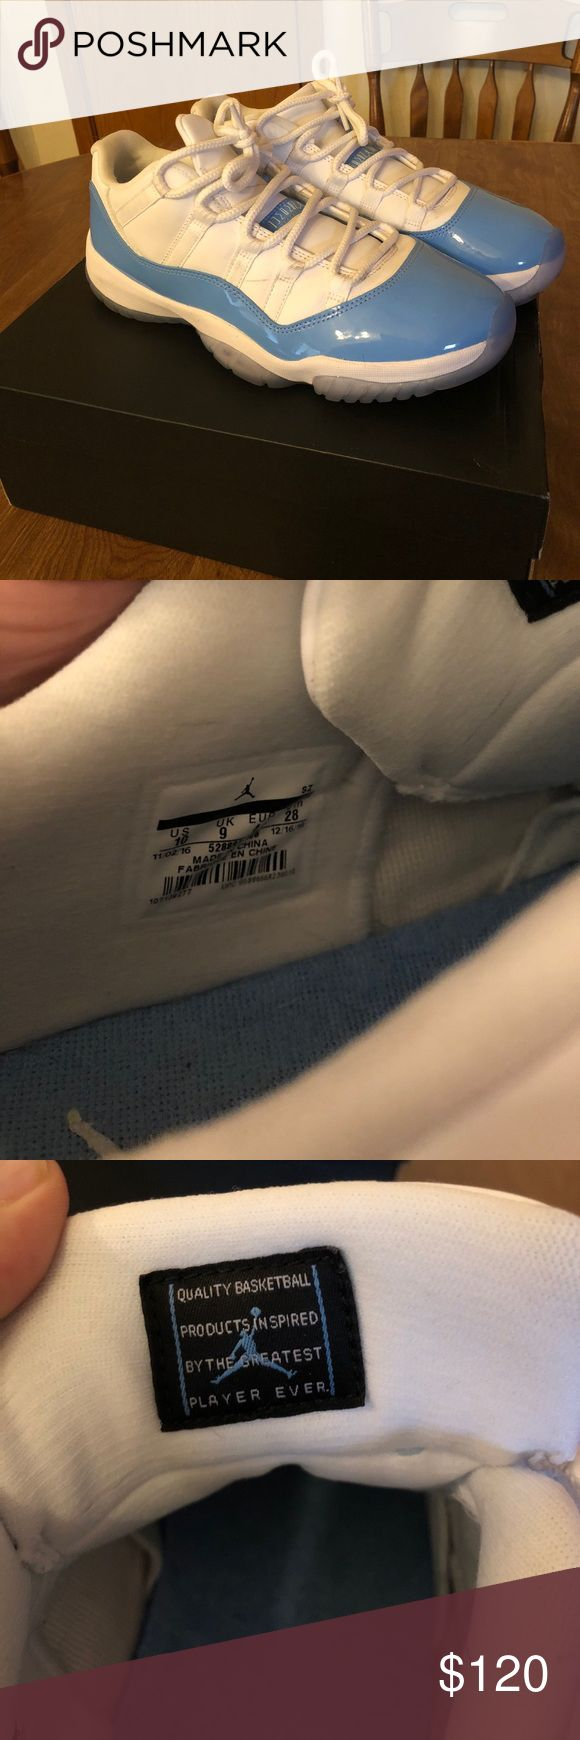 Jordan 11 UNC Low. Great shape. These are worn but in great shape still. All my shoes are 100% Authentic. Everything I sell ships within 24 hours every time. Check my stats. Thanks. Jordan Shoes Sneakers